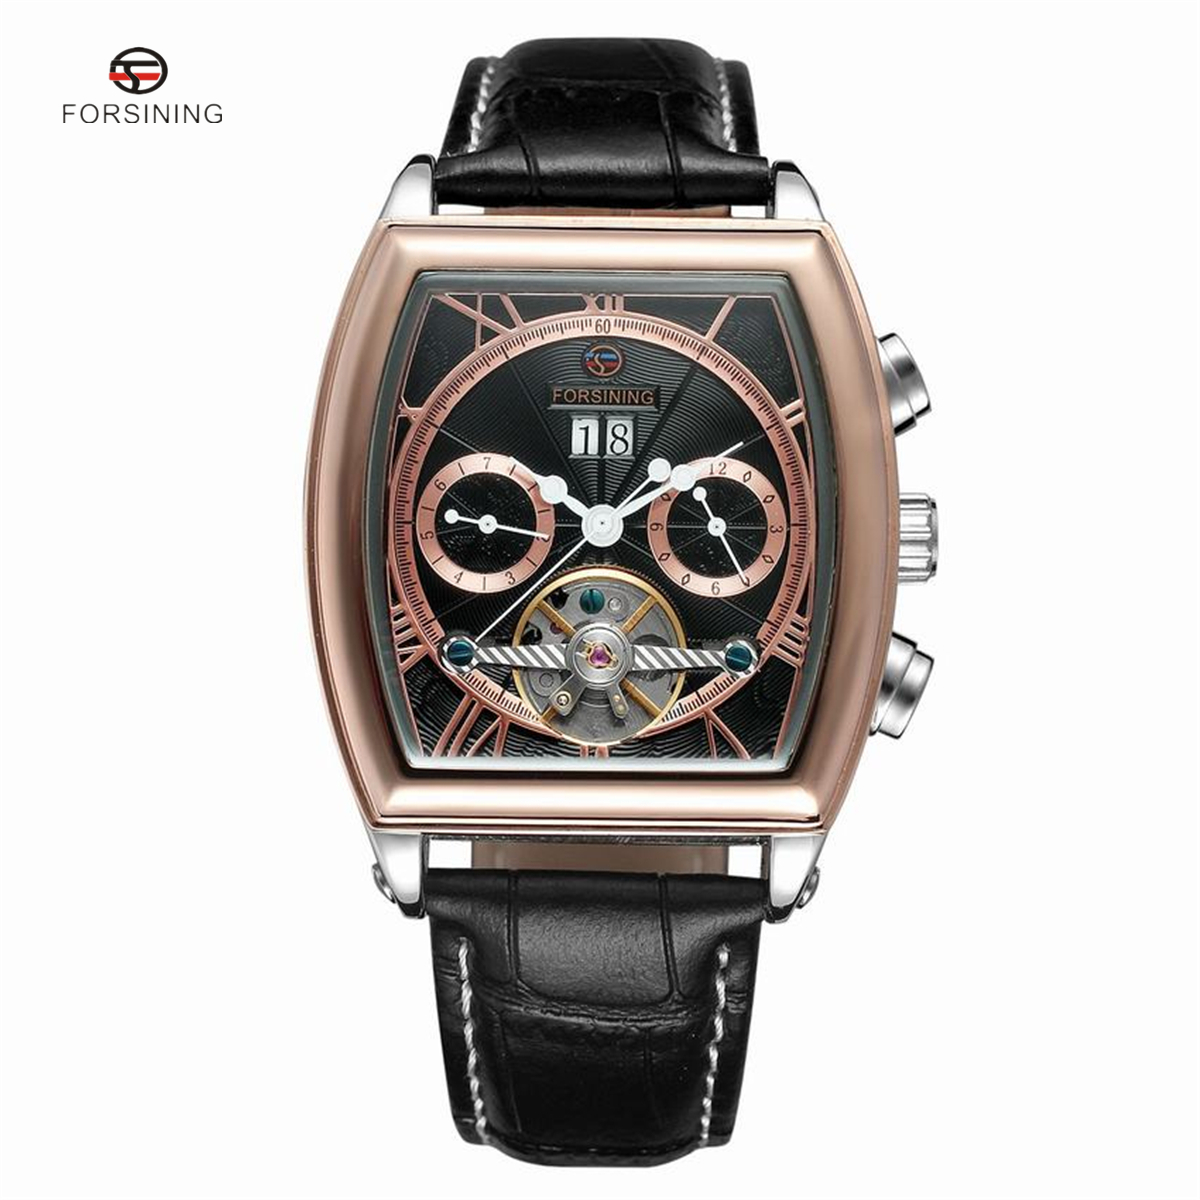 Forsining Tonneau Tourbillon Automatic Mechanical Watch Men Leather Band Auto Date Mens Watches Wristwatch Business Mans Clock forsining a165 men tourbillon automatic mechanical watch leather strap date week month year display